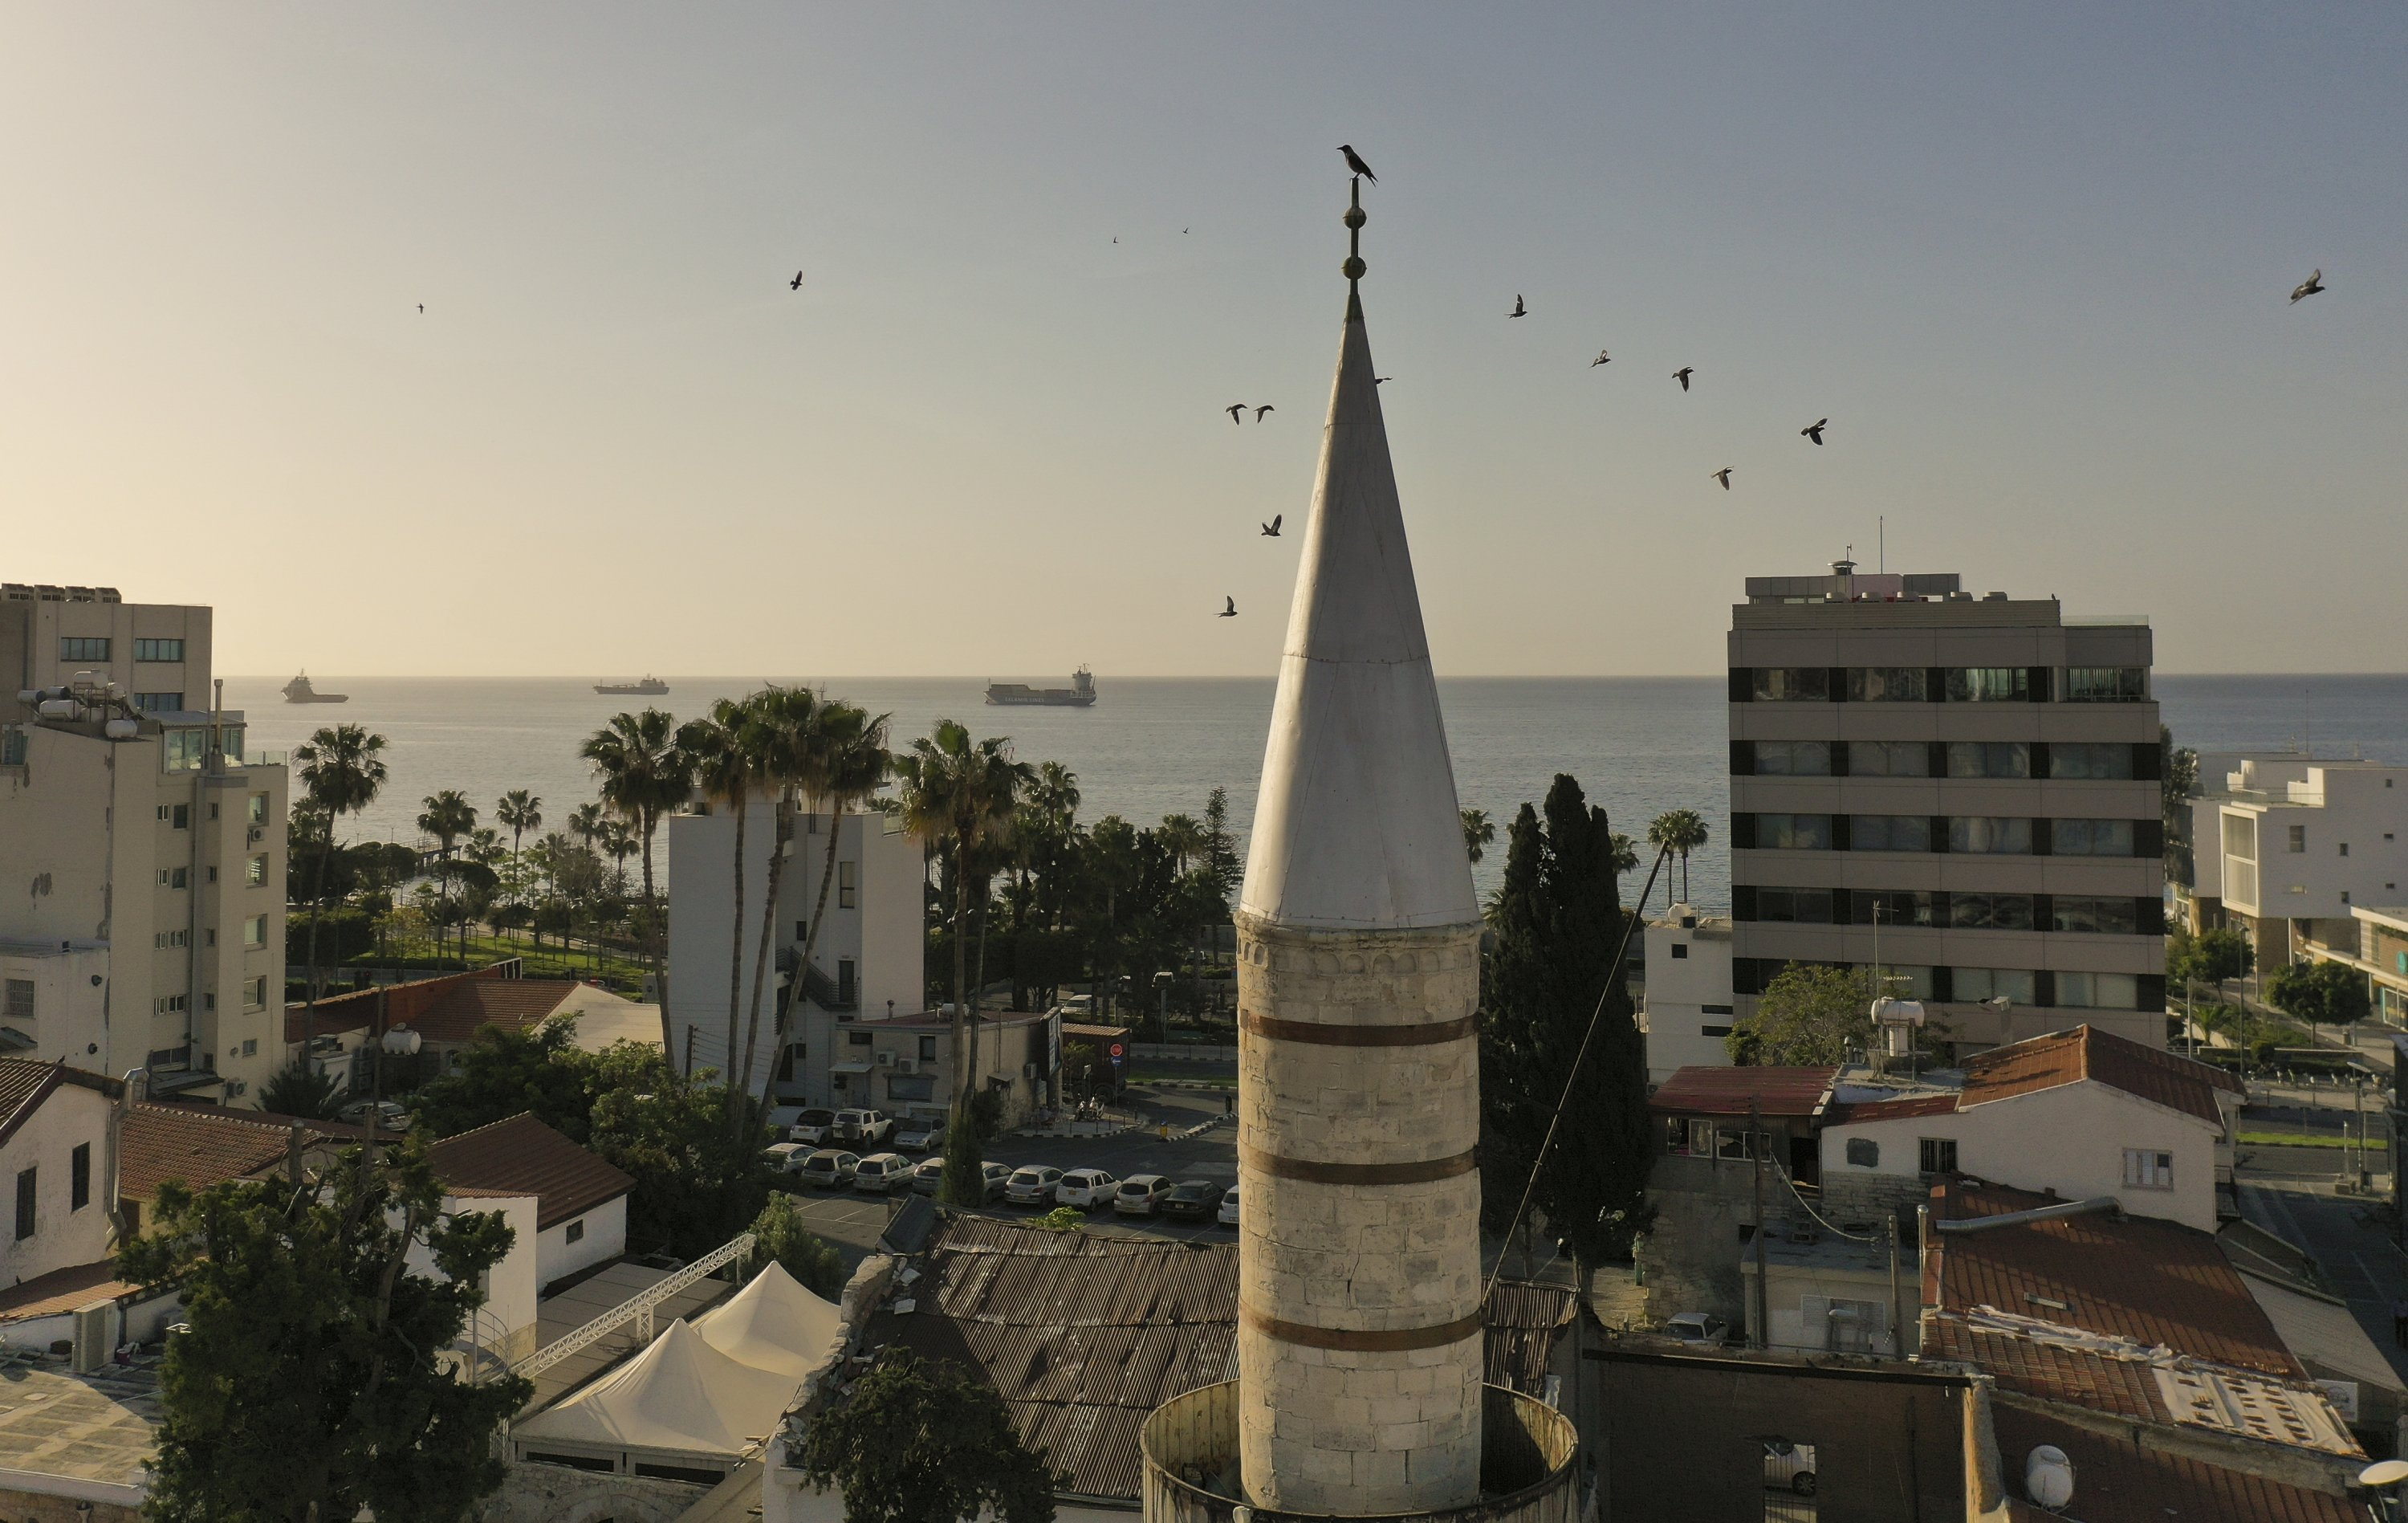 A crow sits on the minaret of the Kebir Mosque, also known as the Grand Mosque of Limassol, overlooking the Mediterranean coast, Limassol, Cyprus, May 5, 2021. (Photo by Getty Images)